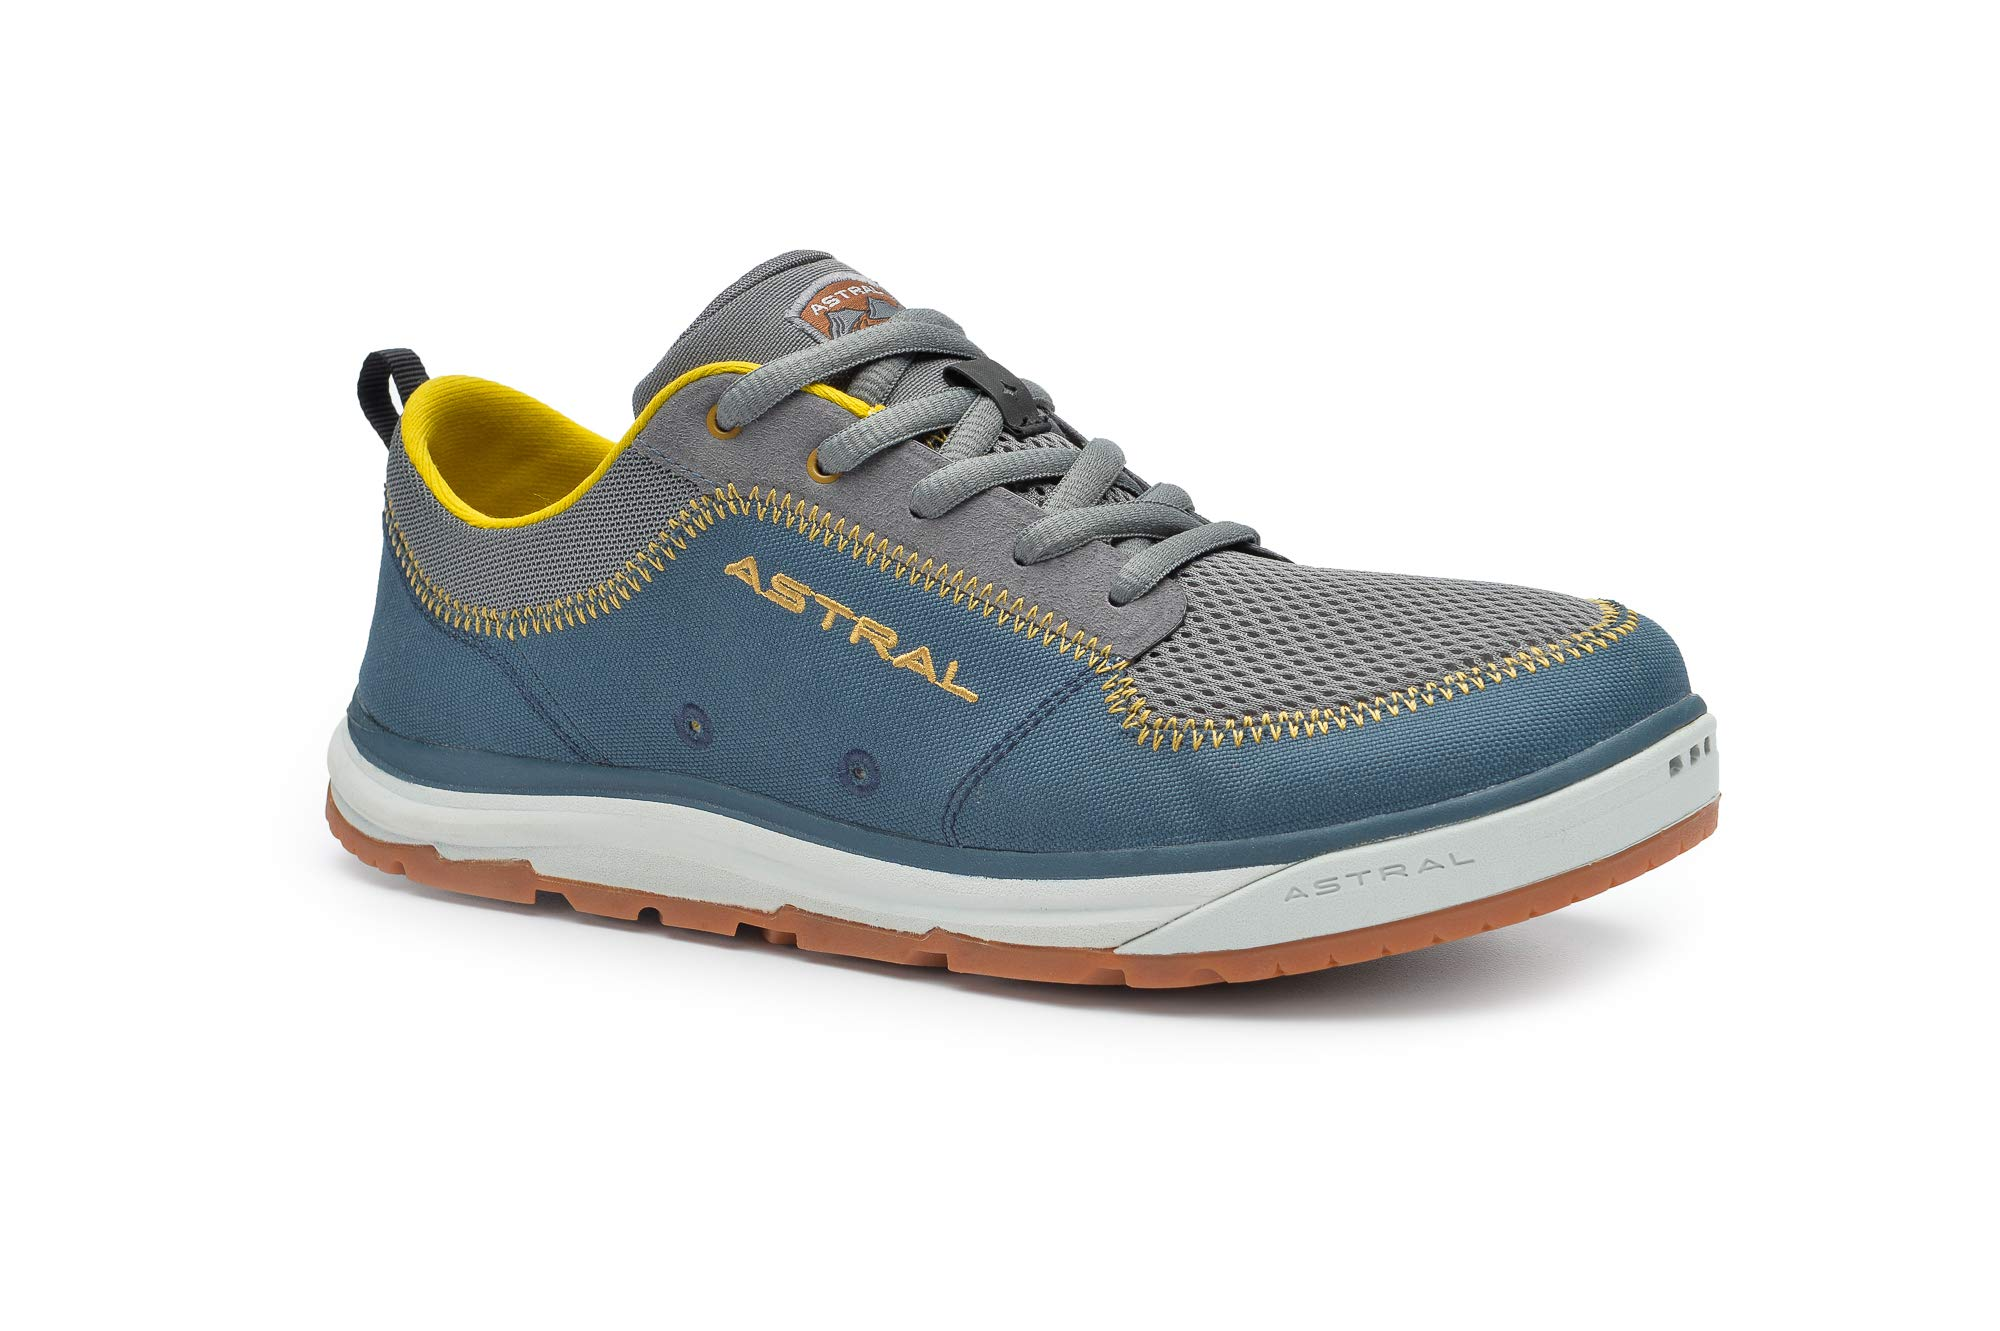 Astral Men's Brewer 2.0 Everyday Minimalist Outdoor Sneakers, Grippy and Quick Drying, Made for Water Sports, Travel, and Rock Scrambling, Storm Navy, 9.5 M US